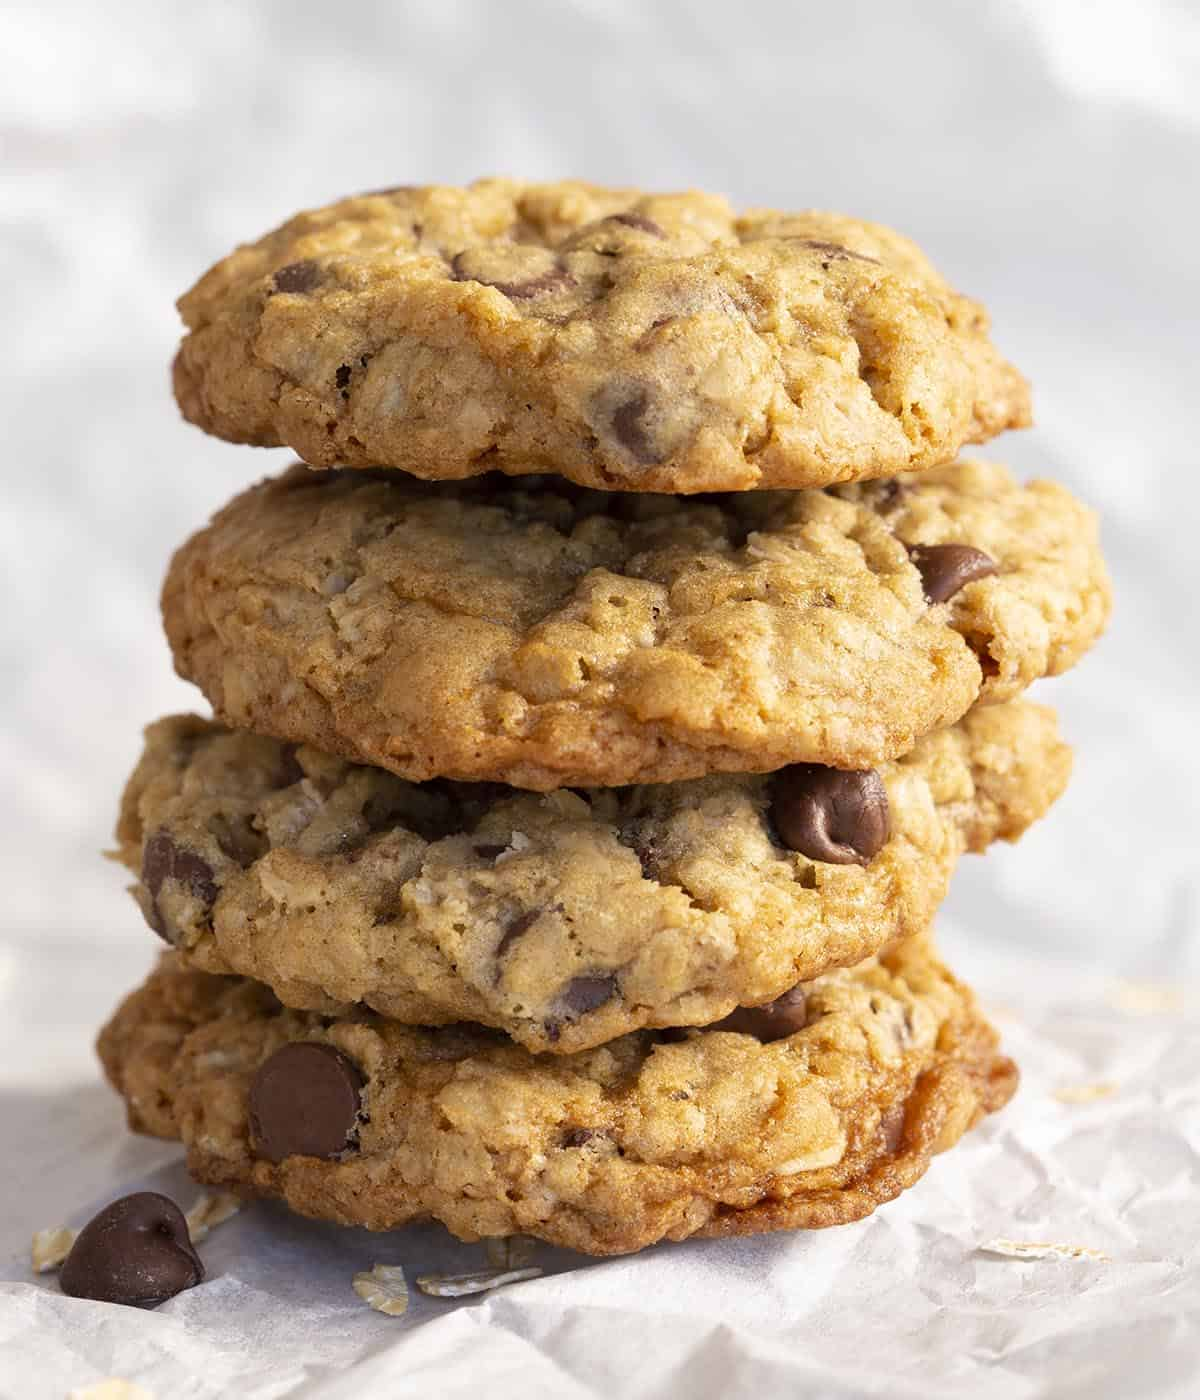 Four Oatmeal Chocolate Chip cookies stacked vertically.